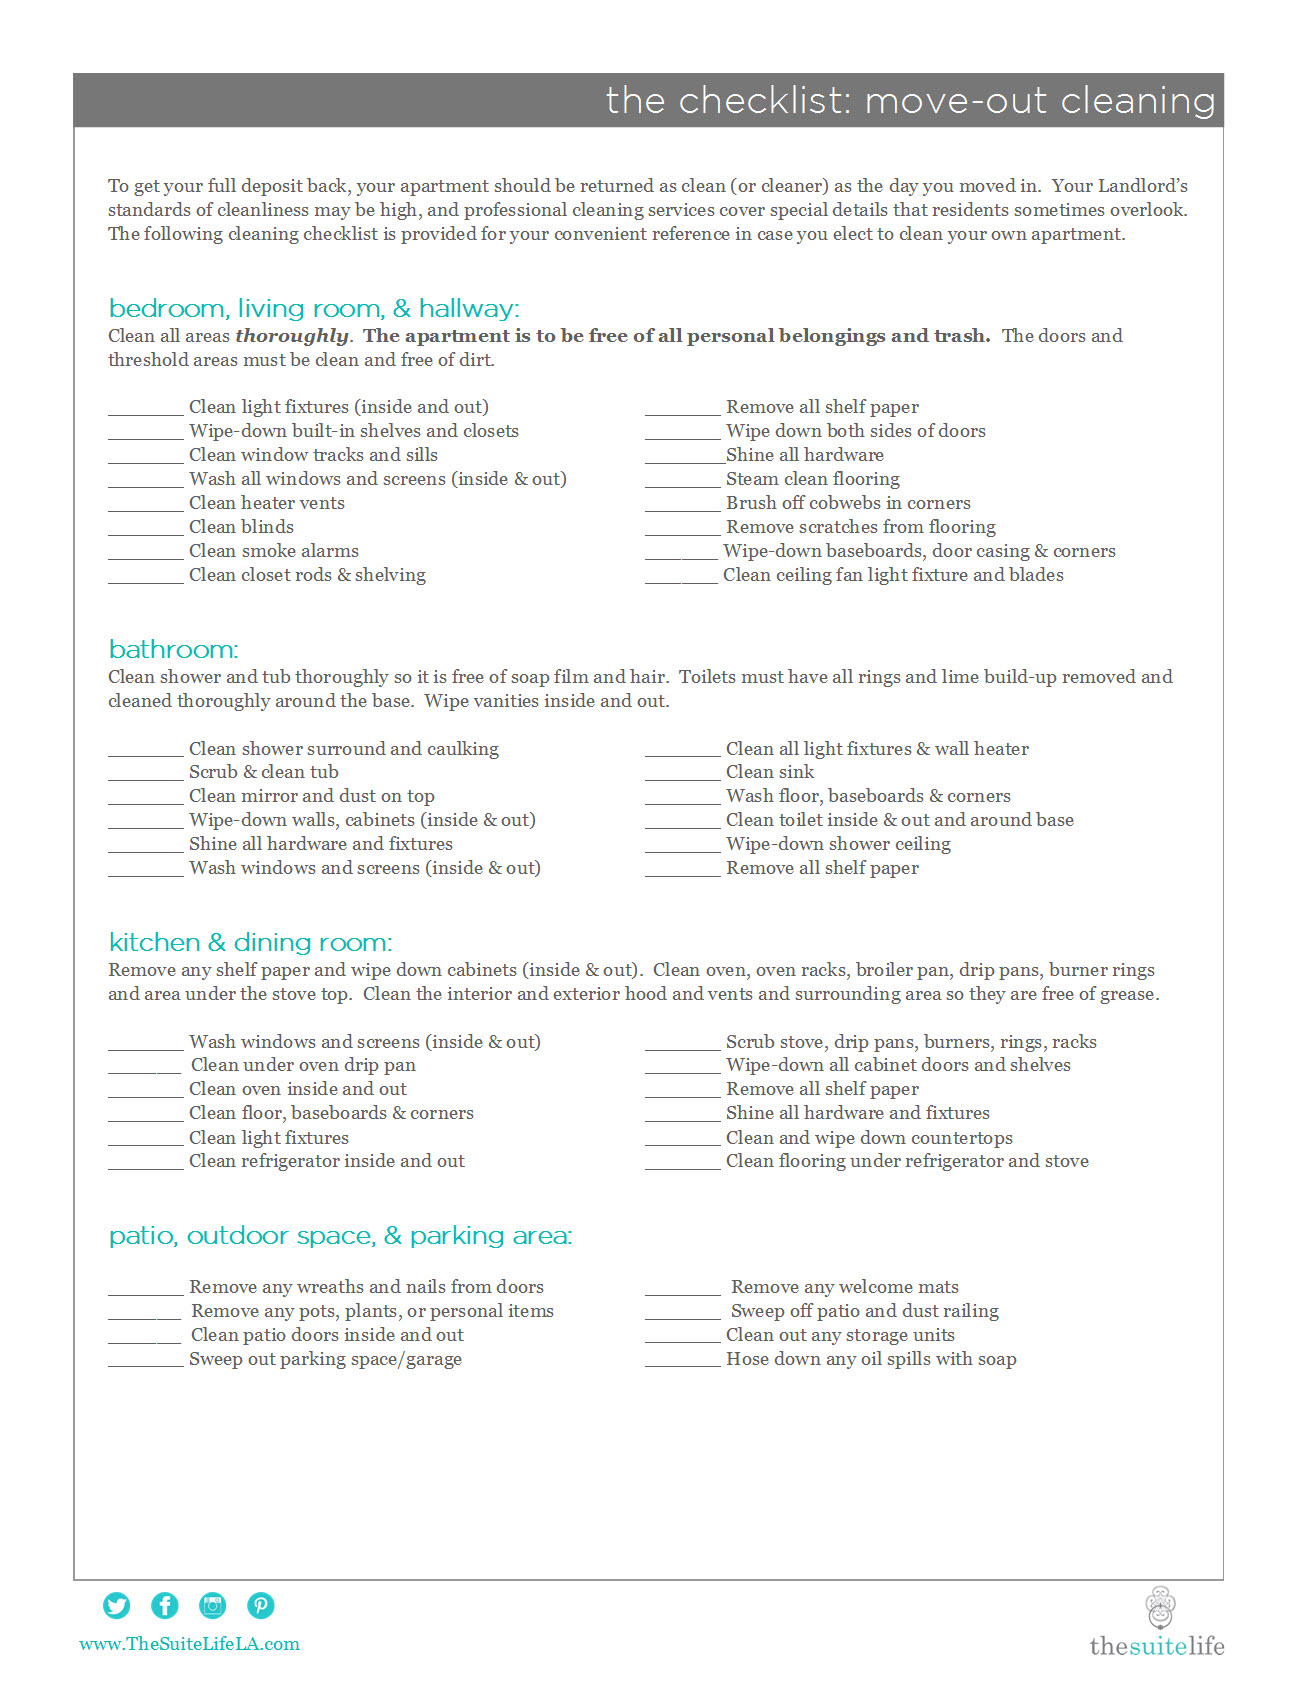 checklist move out cleaning